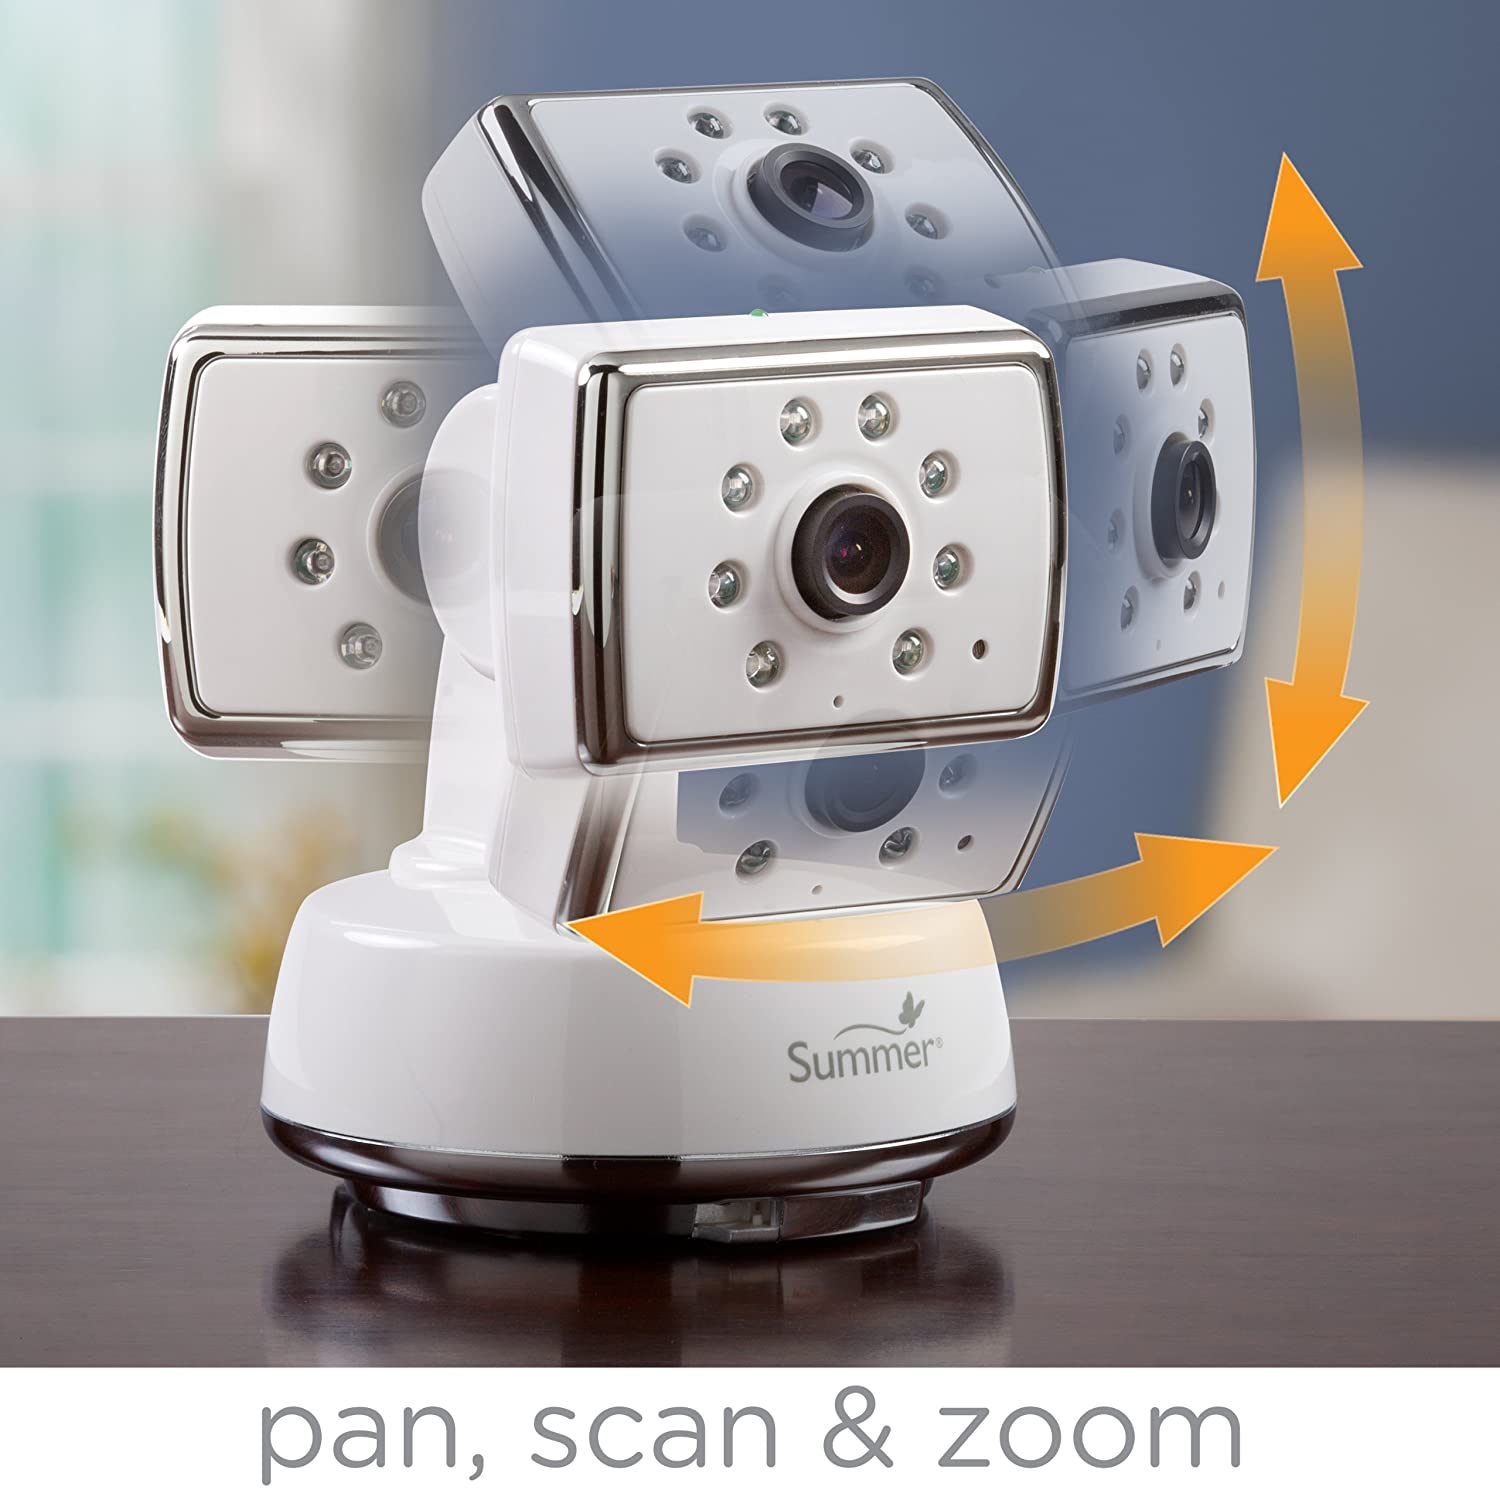 Summer Dual View Extra Video Camera Baby Monitor Model 28980